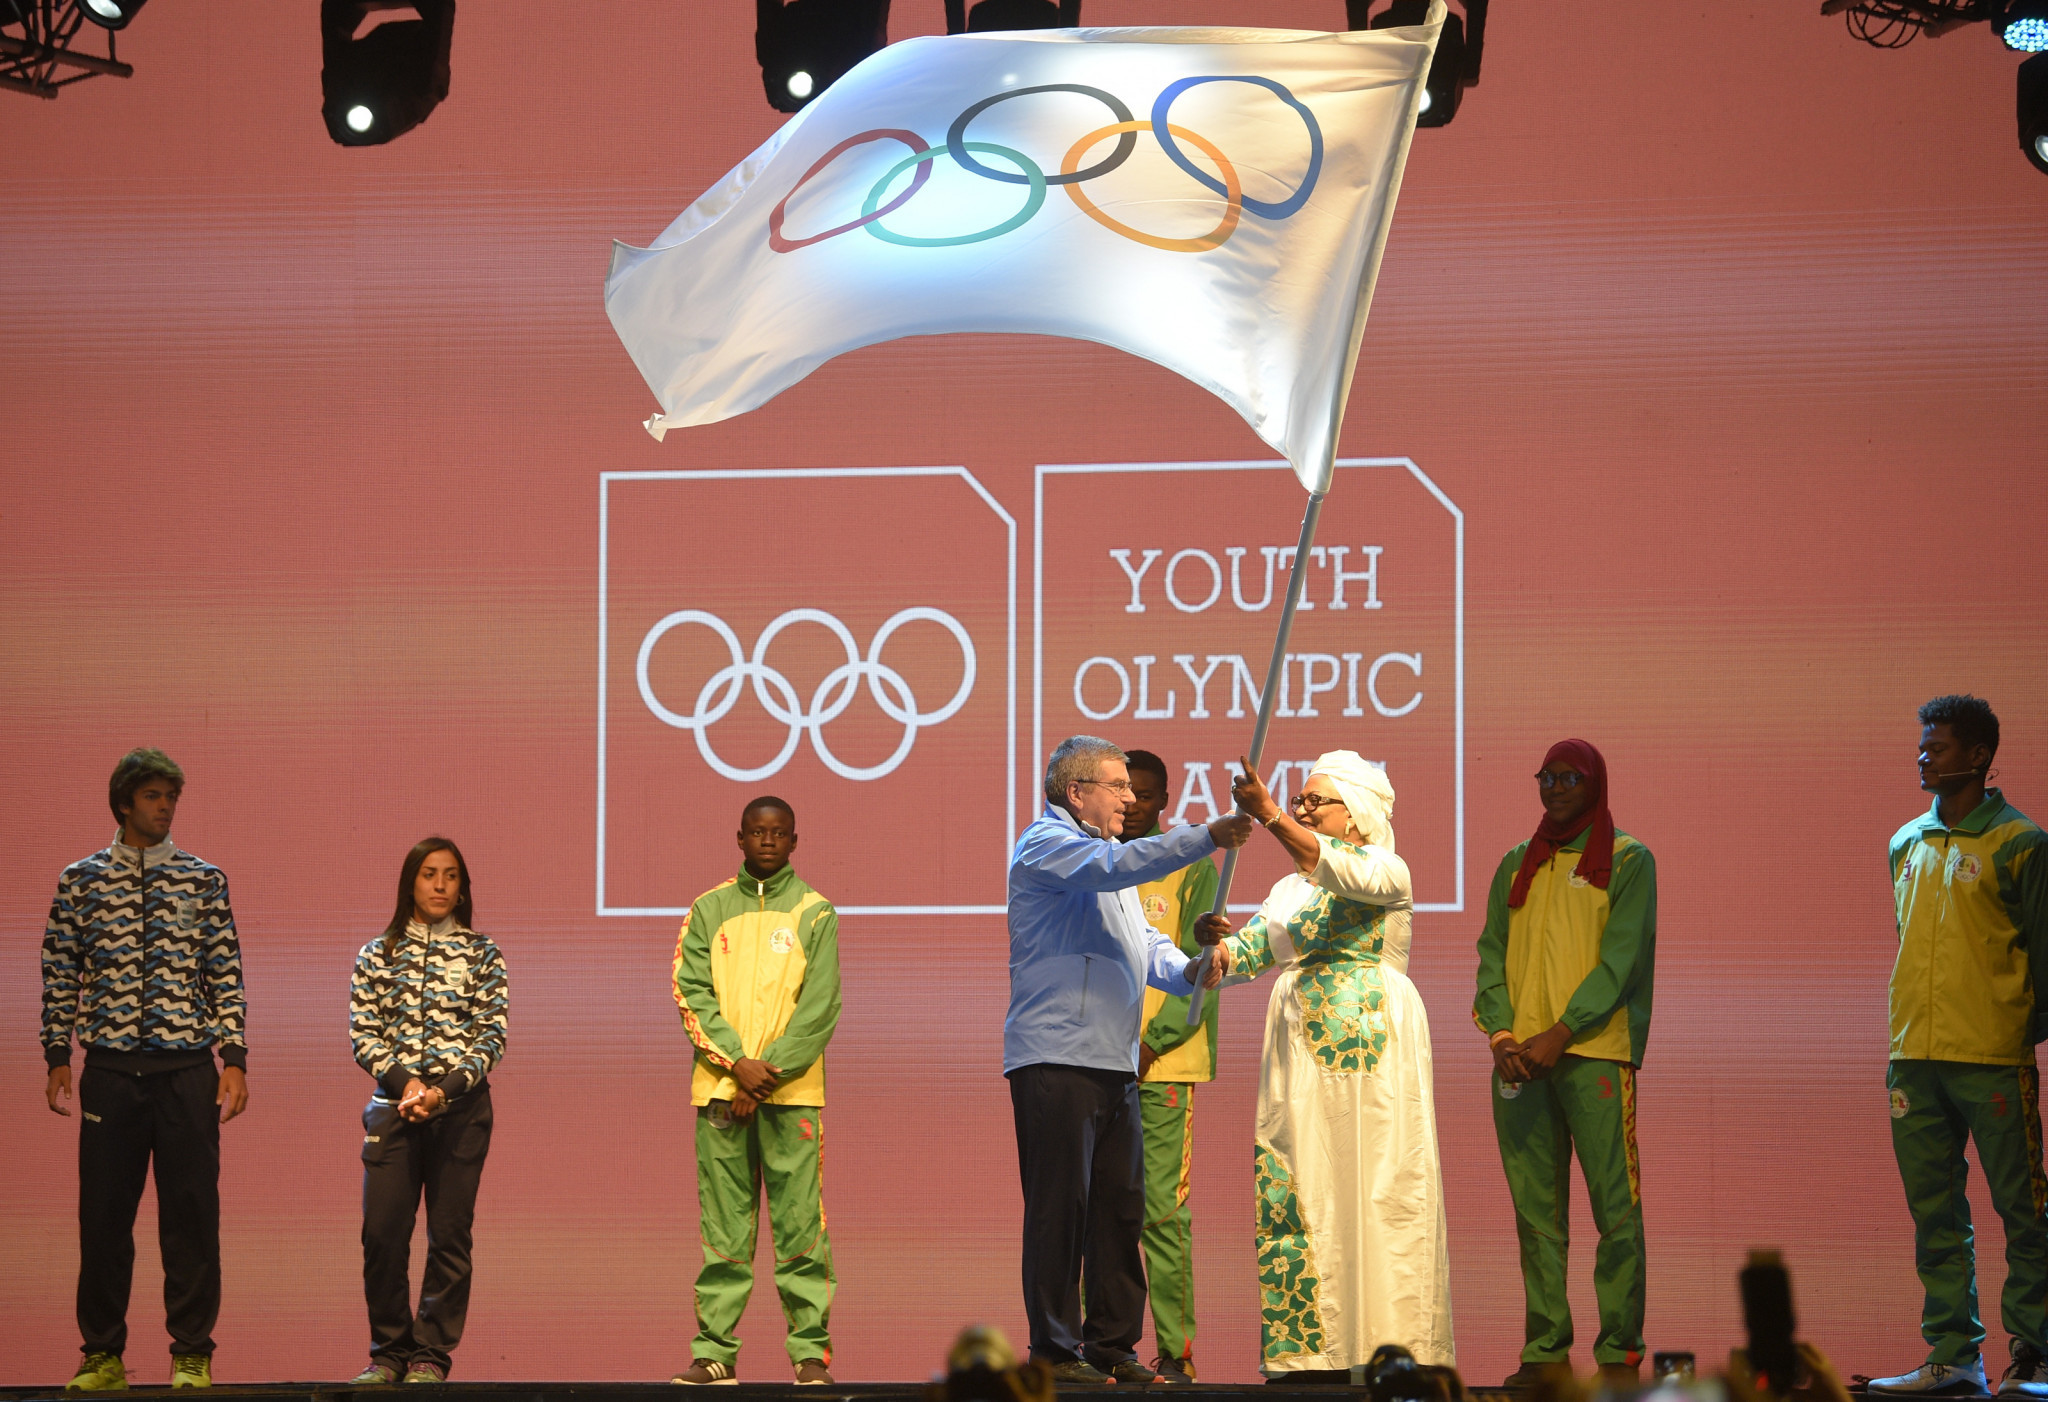 Dakar is due to host the Youth Olympic Games in 2026 ©Getty Images